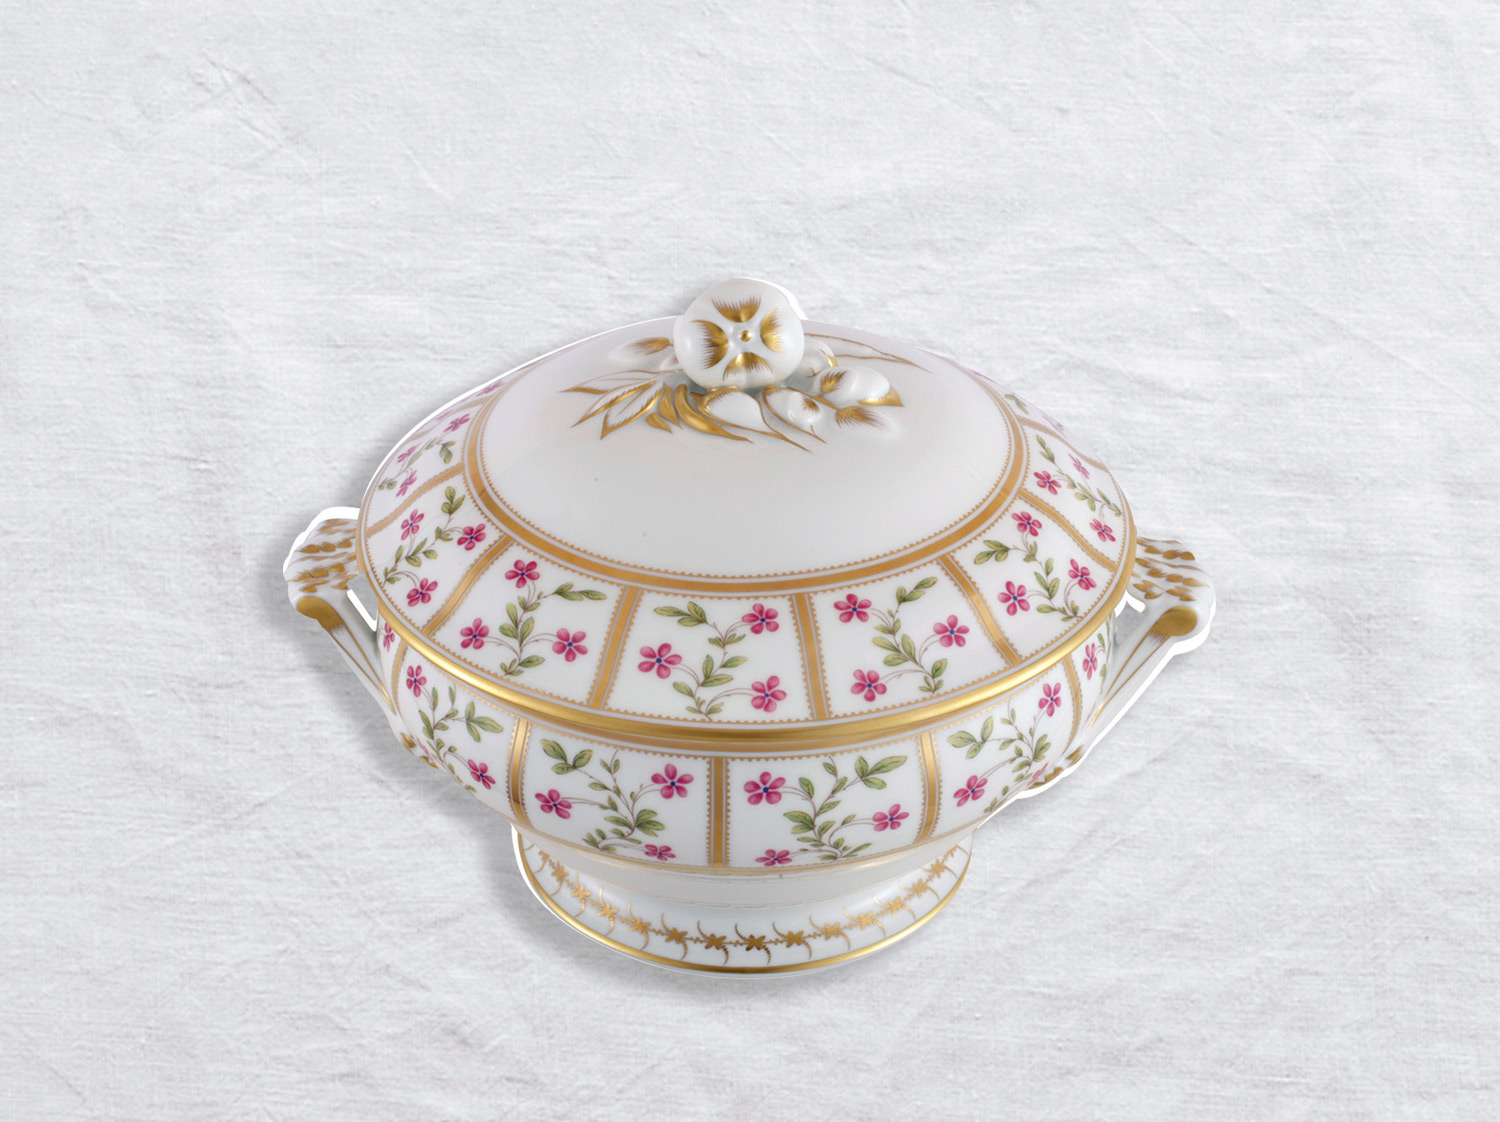 Pot à oilles (soupière) 2,2 L en porcelaine de la collection Roseraie Bernardaud